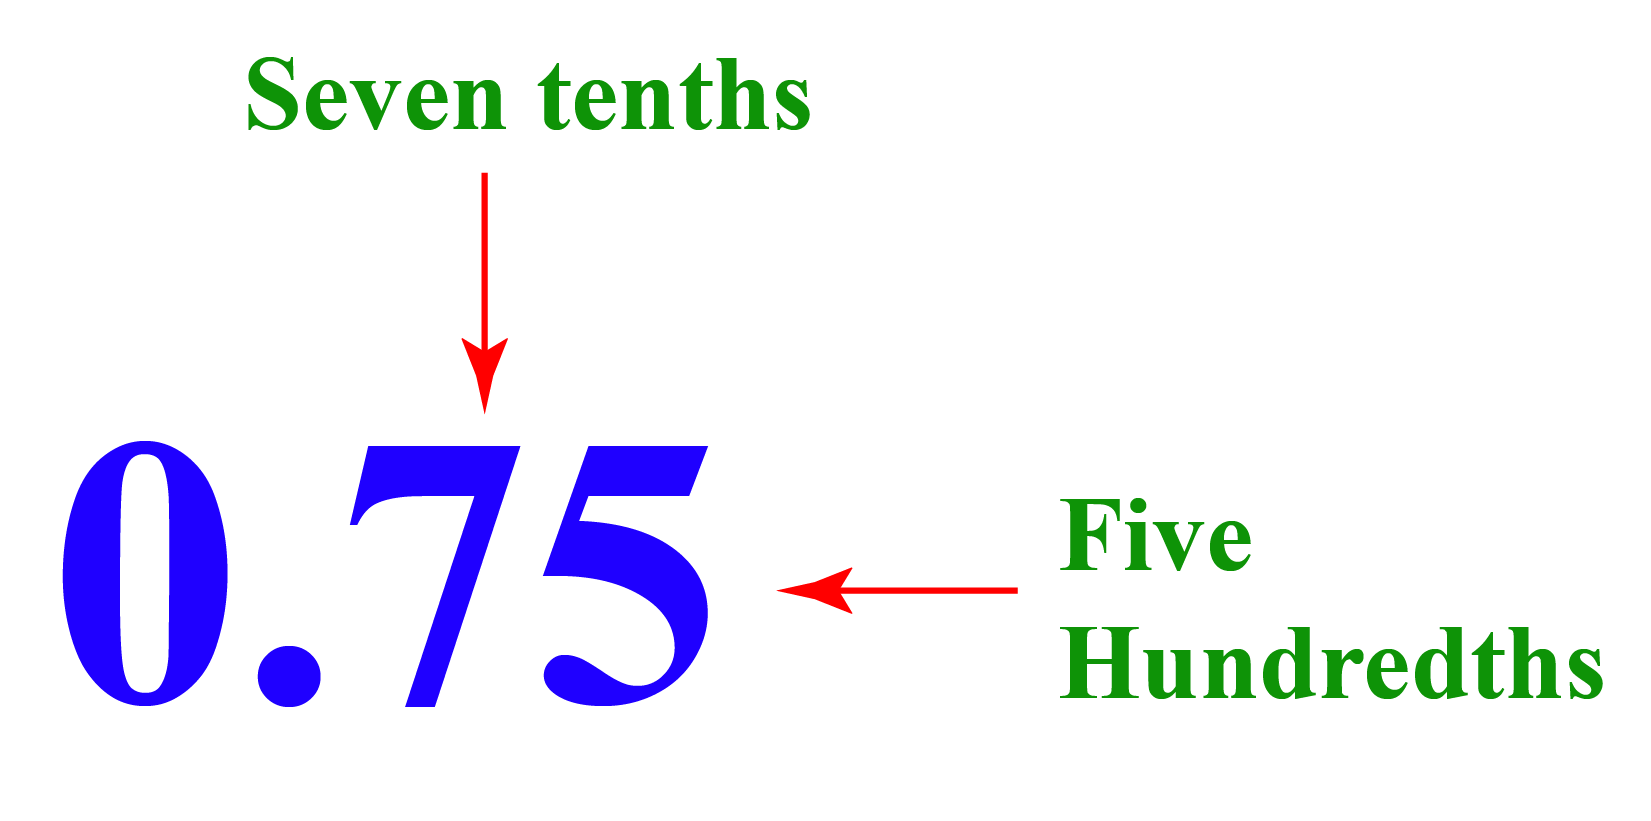 place value of digits in 0.75